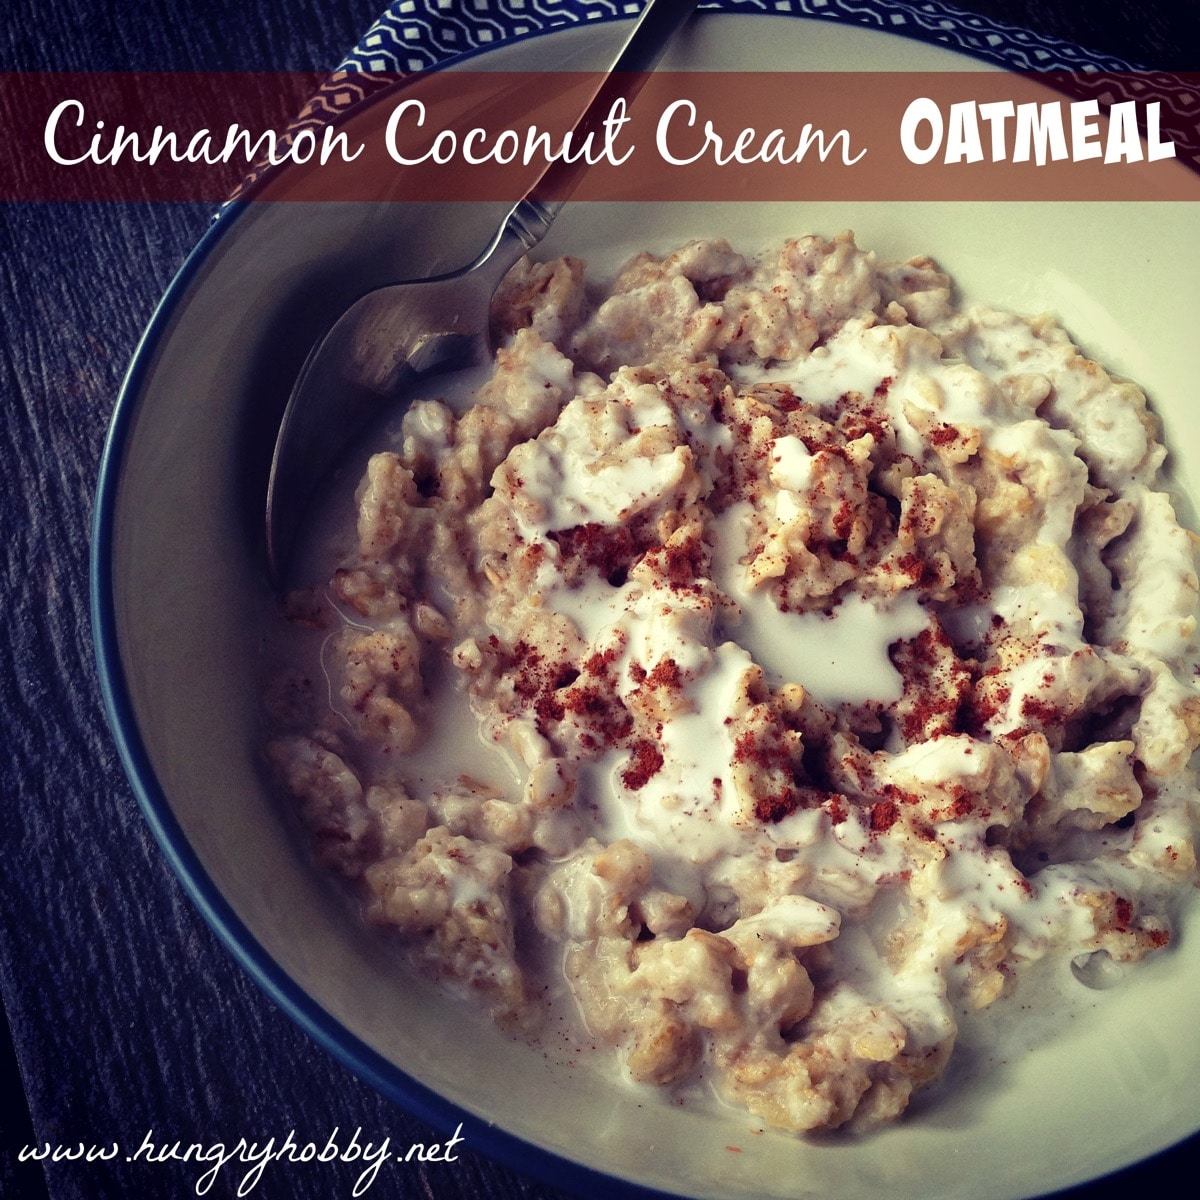 Cinnamon coconut cream oatmeal